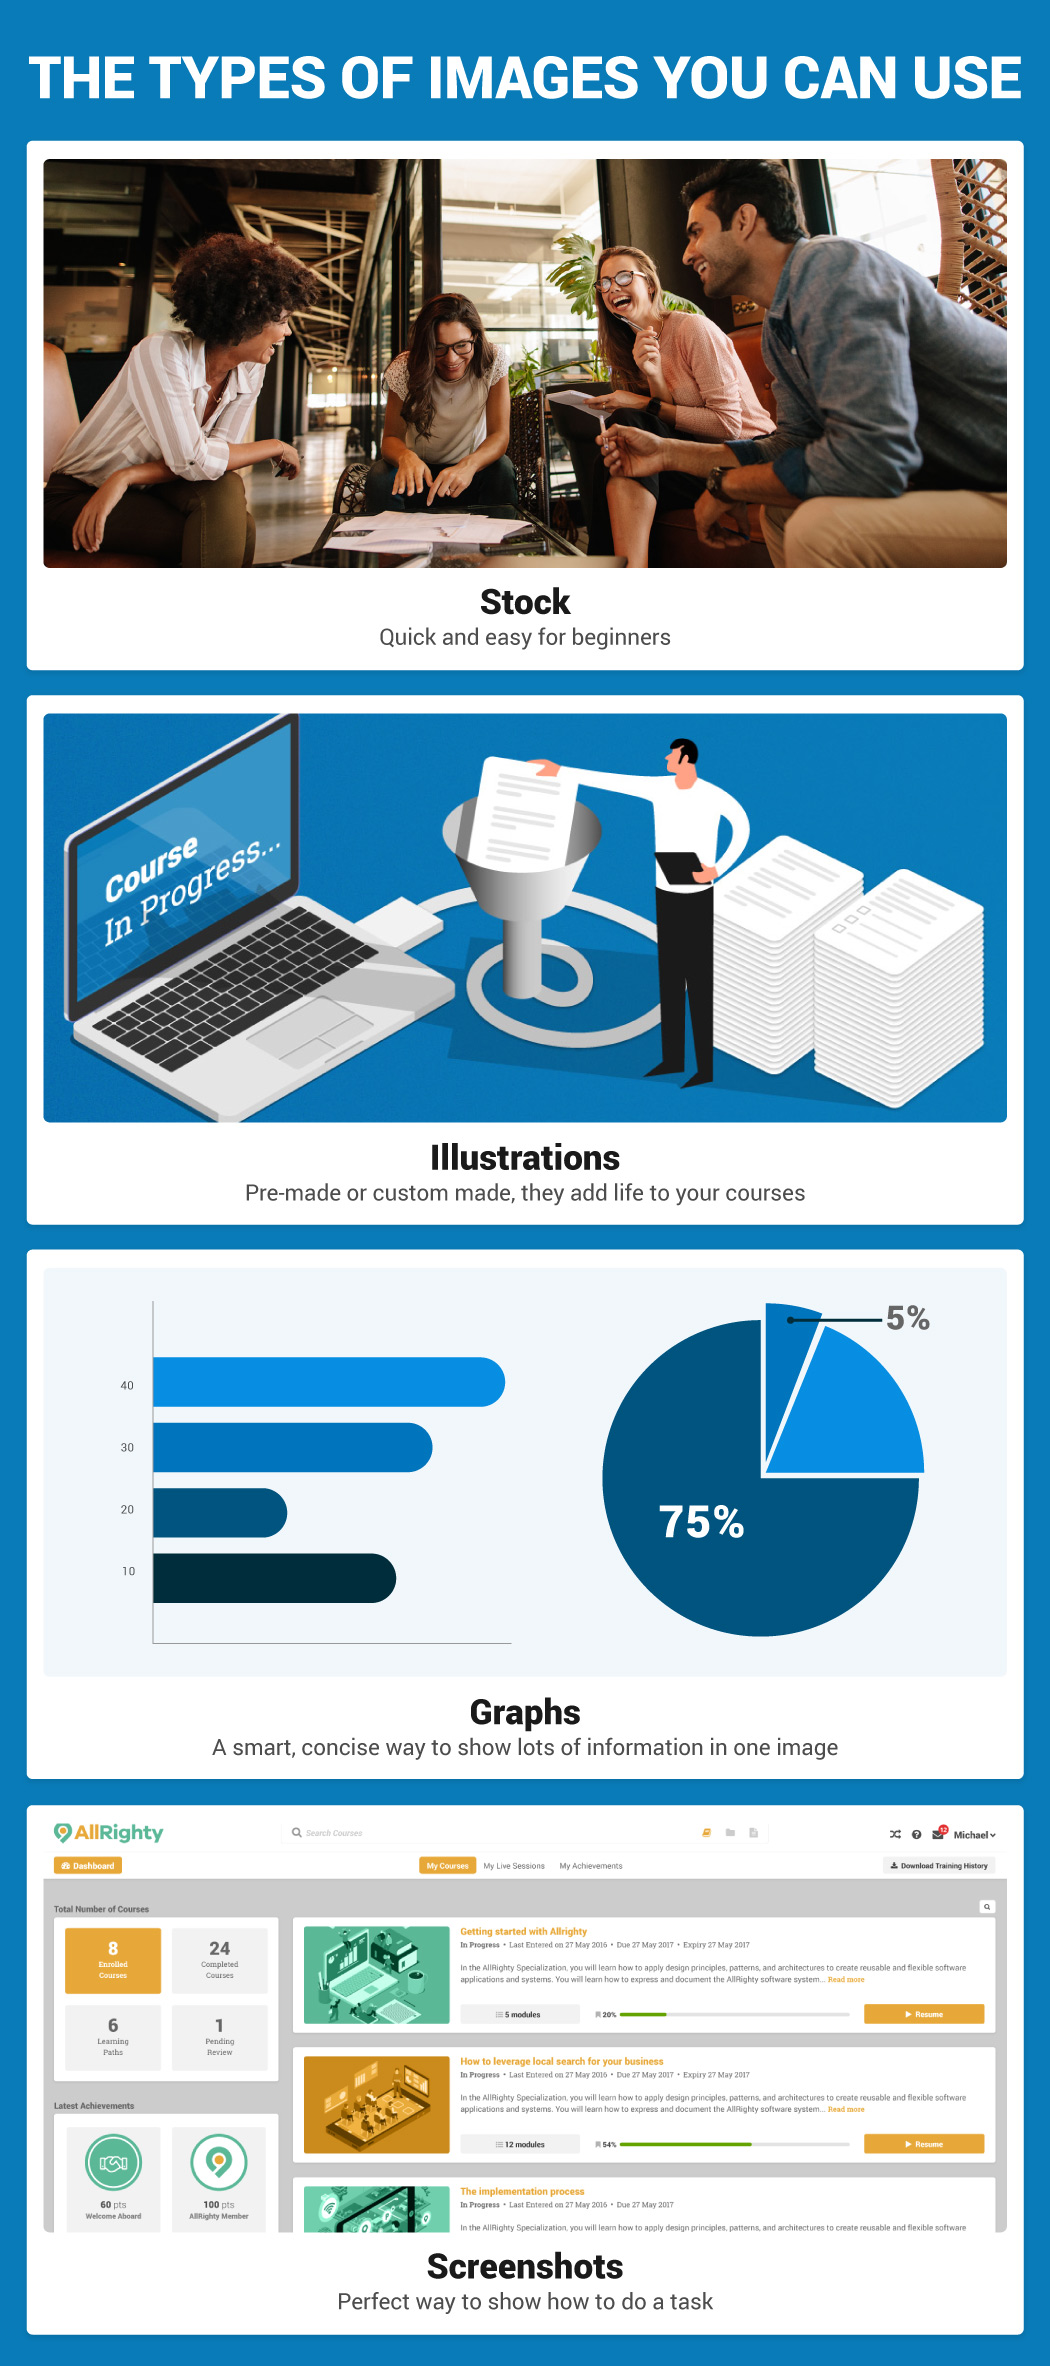 Image elearning infographic